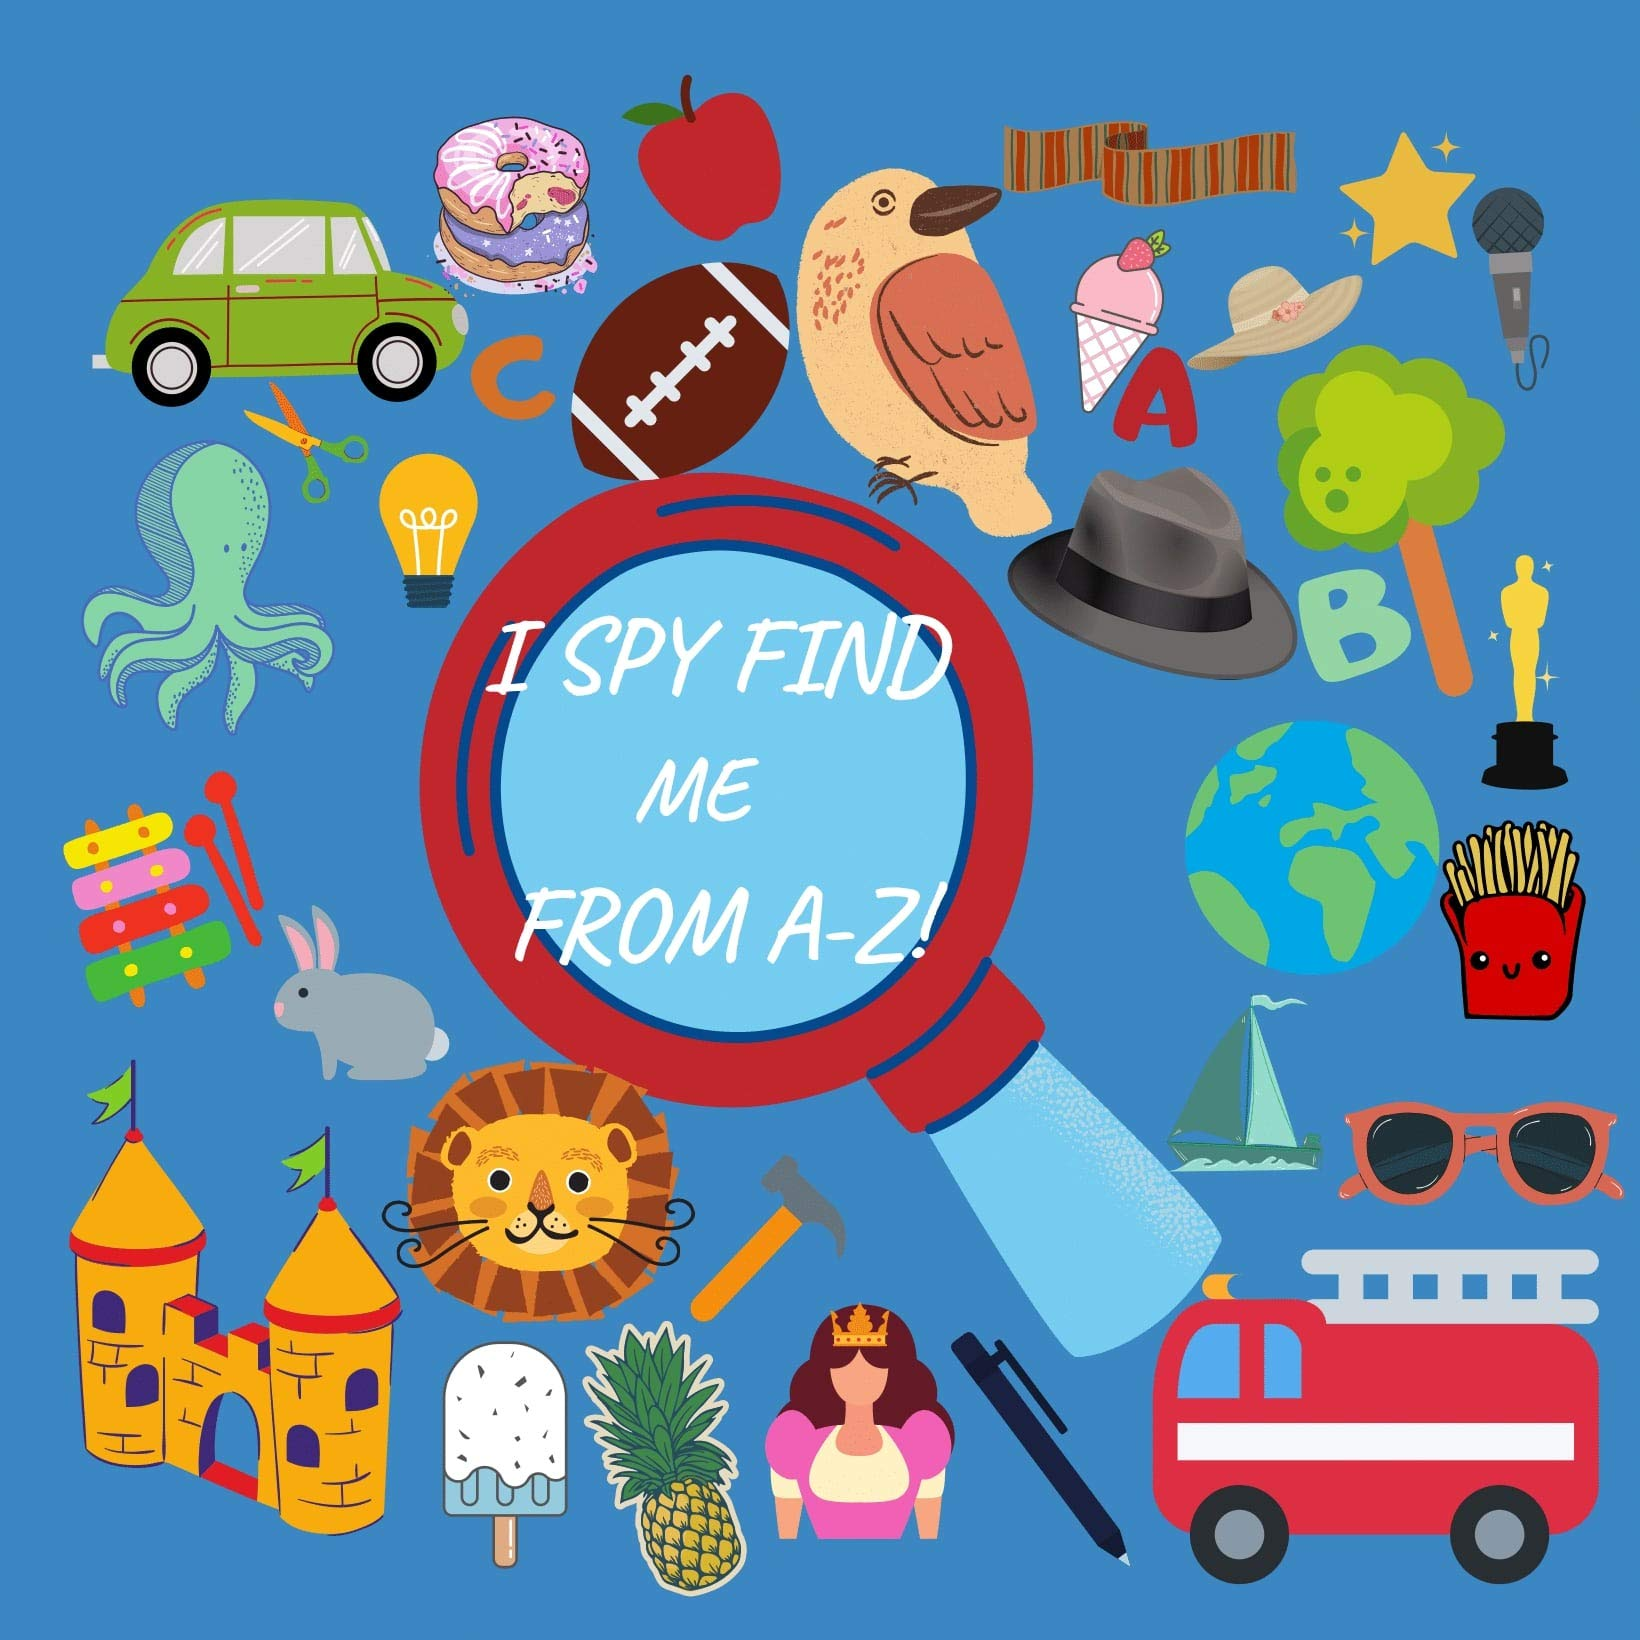 I Spy Find Me From A-Z: I Spy Everything with My Little Eye A Fun Guessing Game for 2-4 Years Old